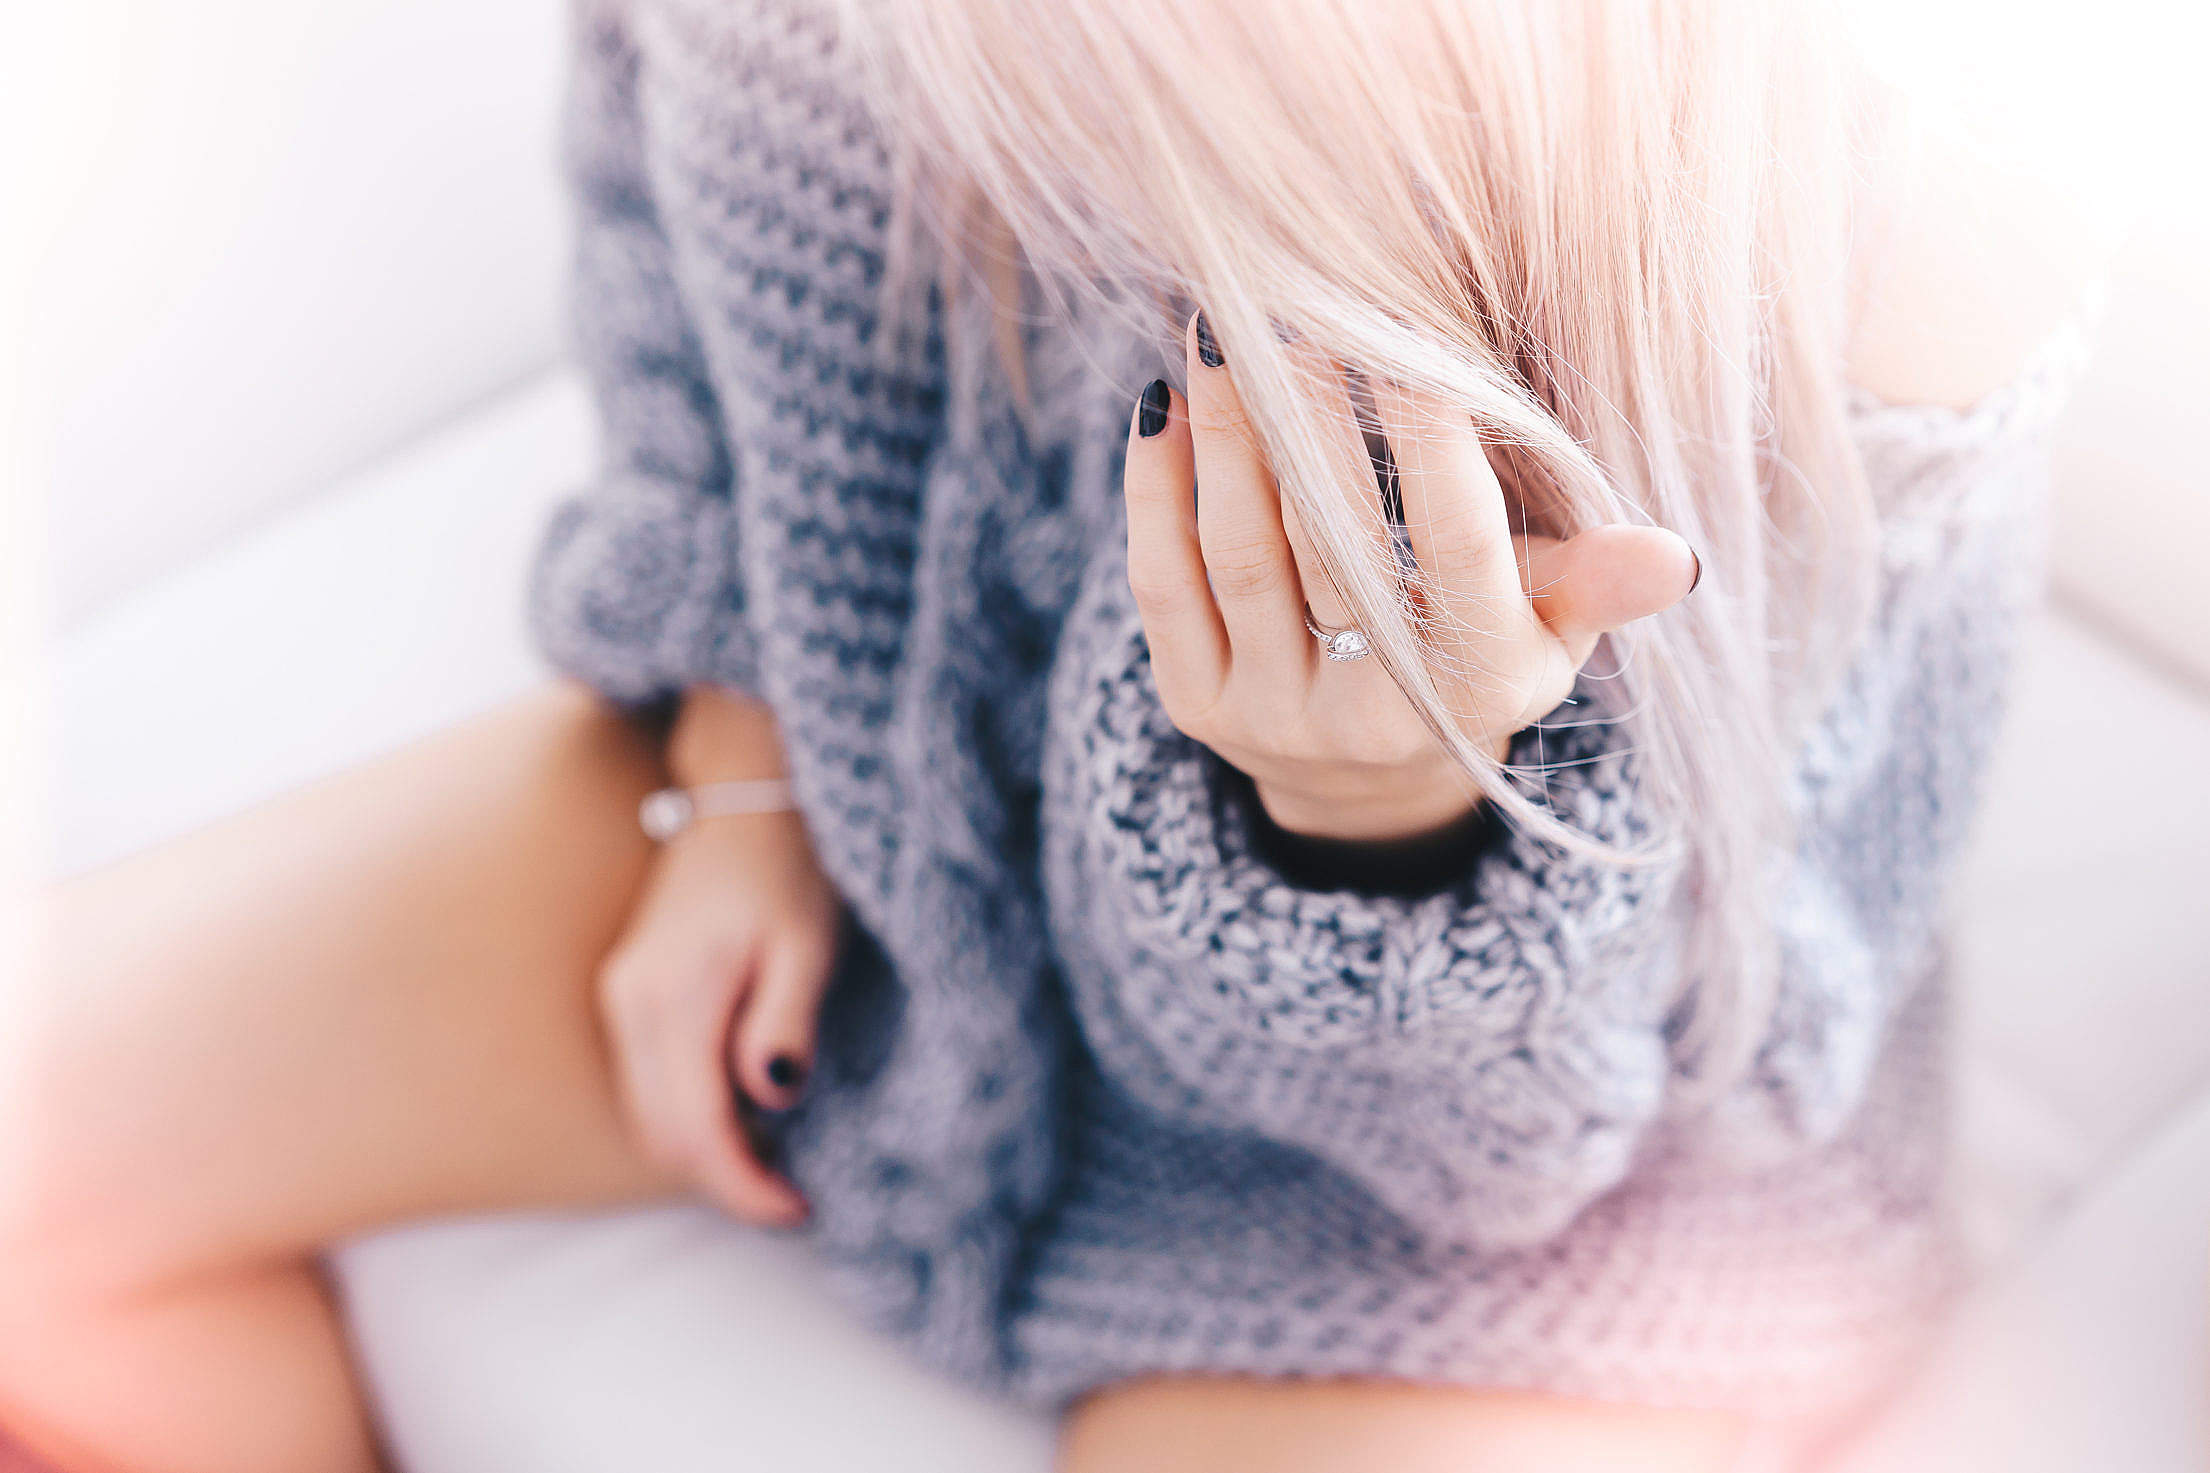 Download Blonde Woman with a Ring Bright Moody Free Stock Photo